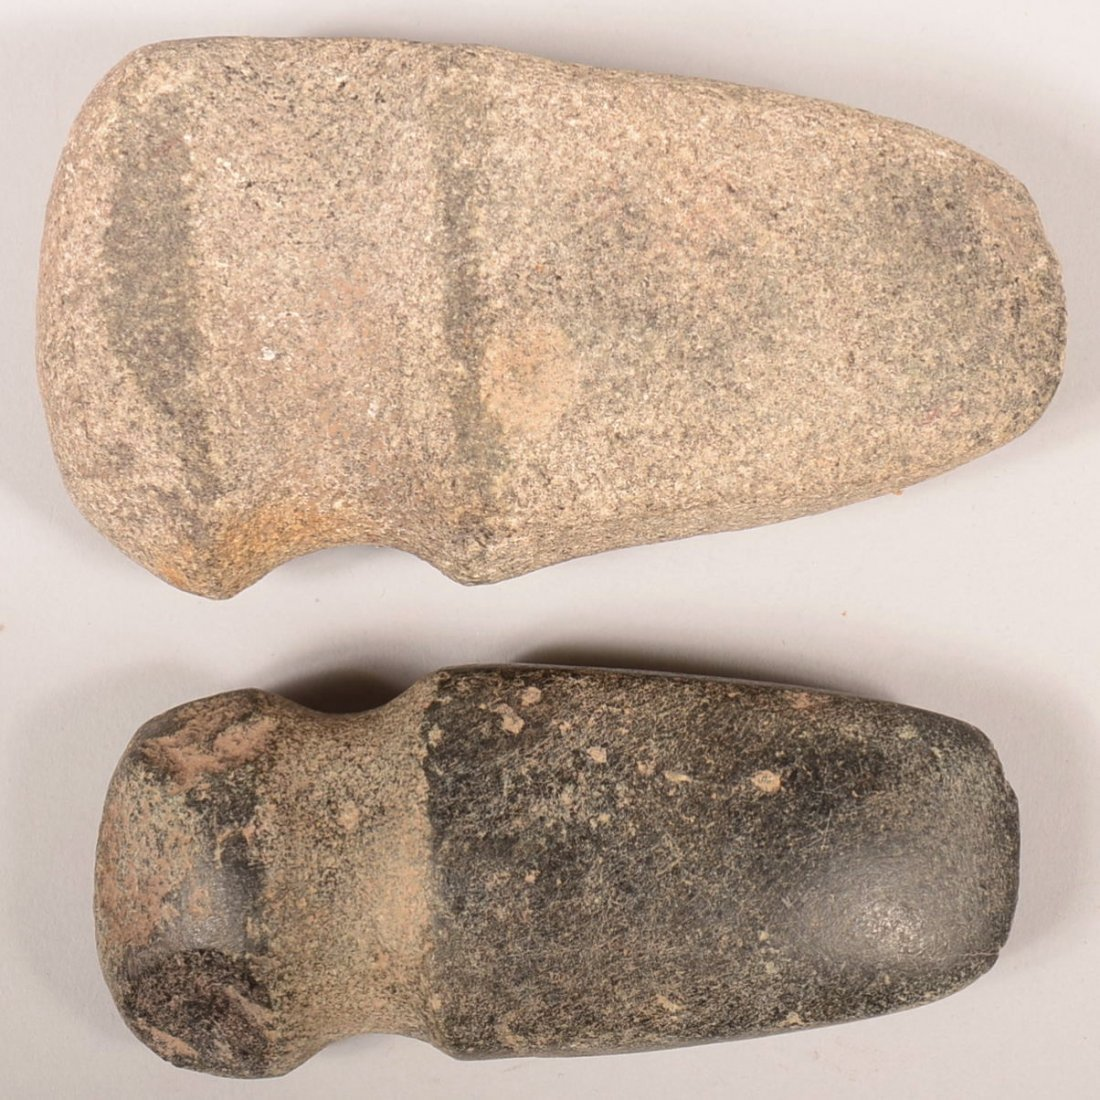 2 Pre-historic hard stone axes from the Central U.S. -